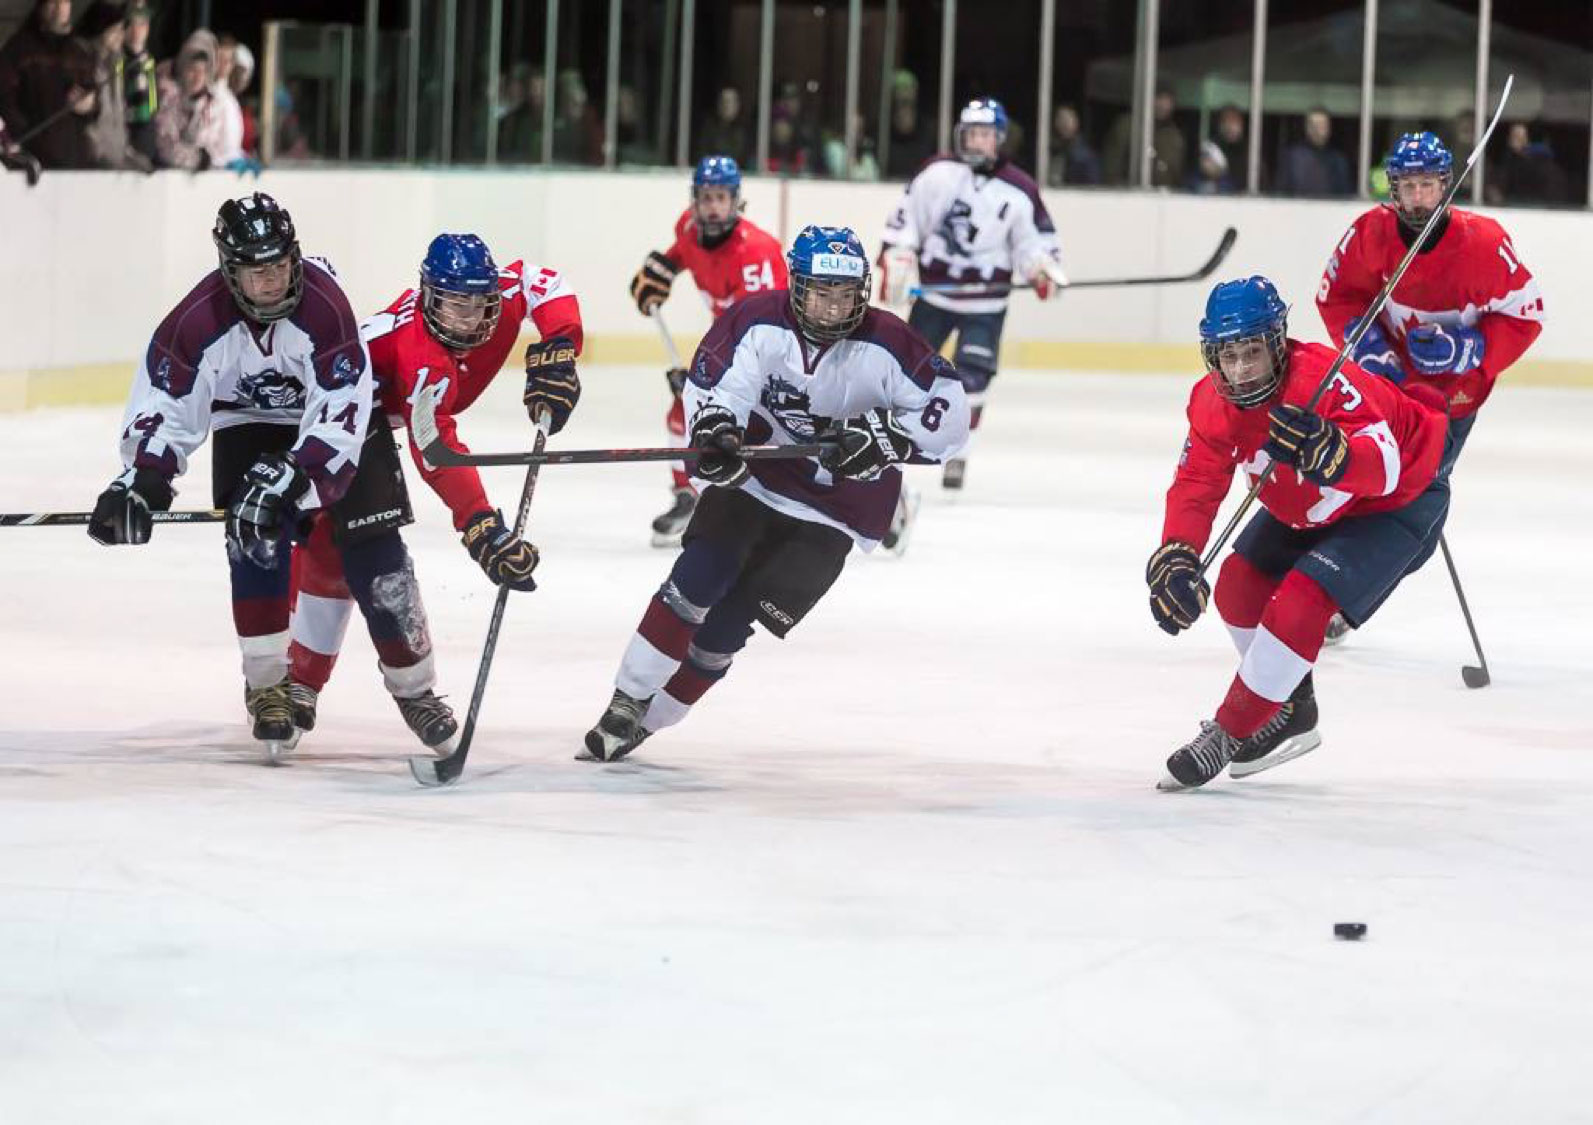 Competitive Hockey Games